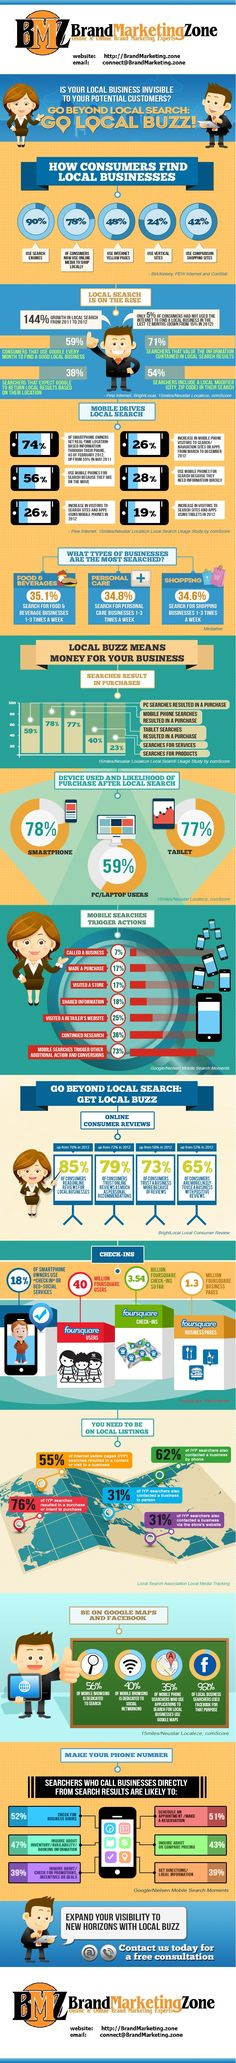 Dominate Local: Check-ins, Listings, Maps, Reviews. •	85% of consumers read online reviews for local businesses (up from 76% in 2012) •	79% of consumers trust online reviews as much as personal recommendations (up from 72%)  •	73% of consumers trust a business more because of reviews (up from 58%) •	65% of consumers are more likely to use a business with positive reviews (up from 52%)   Contact us to schedule your free consultation on Local Buzz. http://brandmarketing.zone/contact-us/